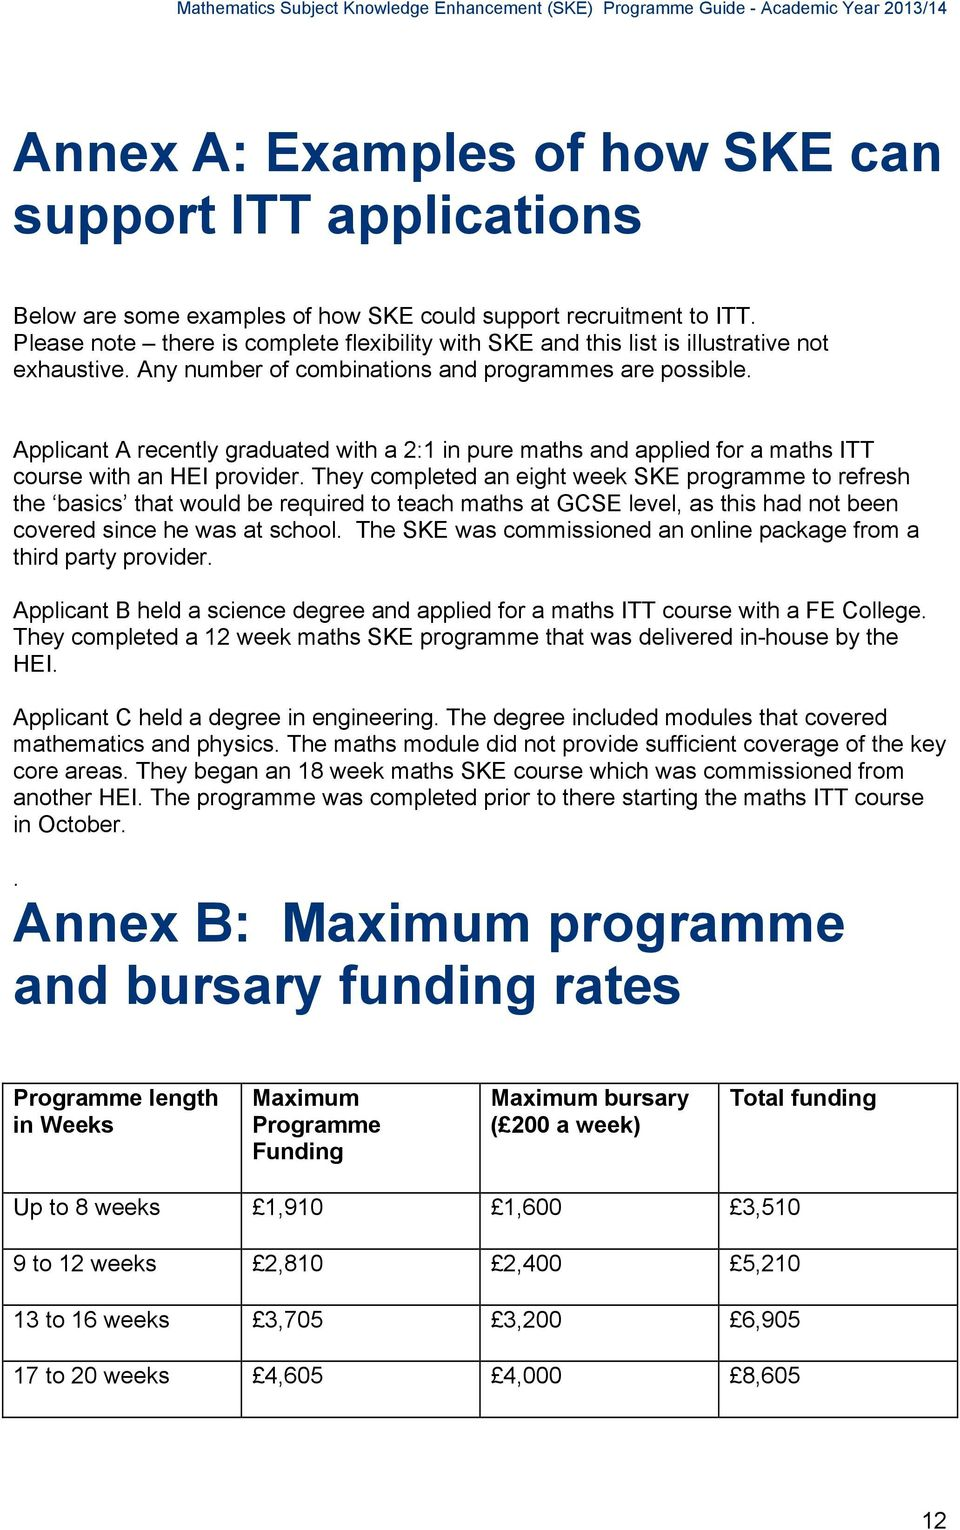 Applicant A recently graduated with a 2:1 in pure maths and applied for a maths ITT course with an HEI provider.